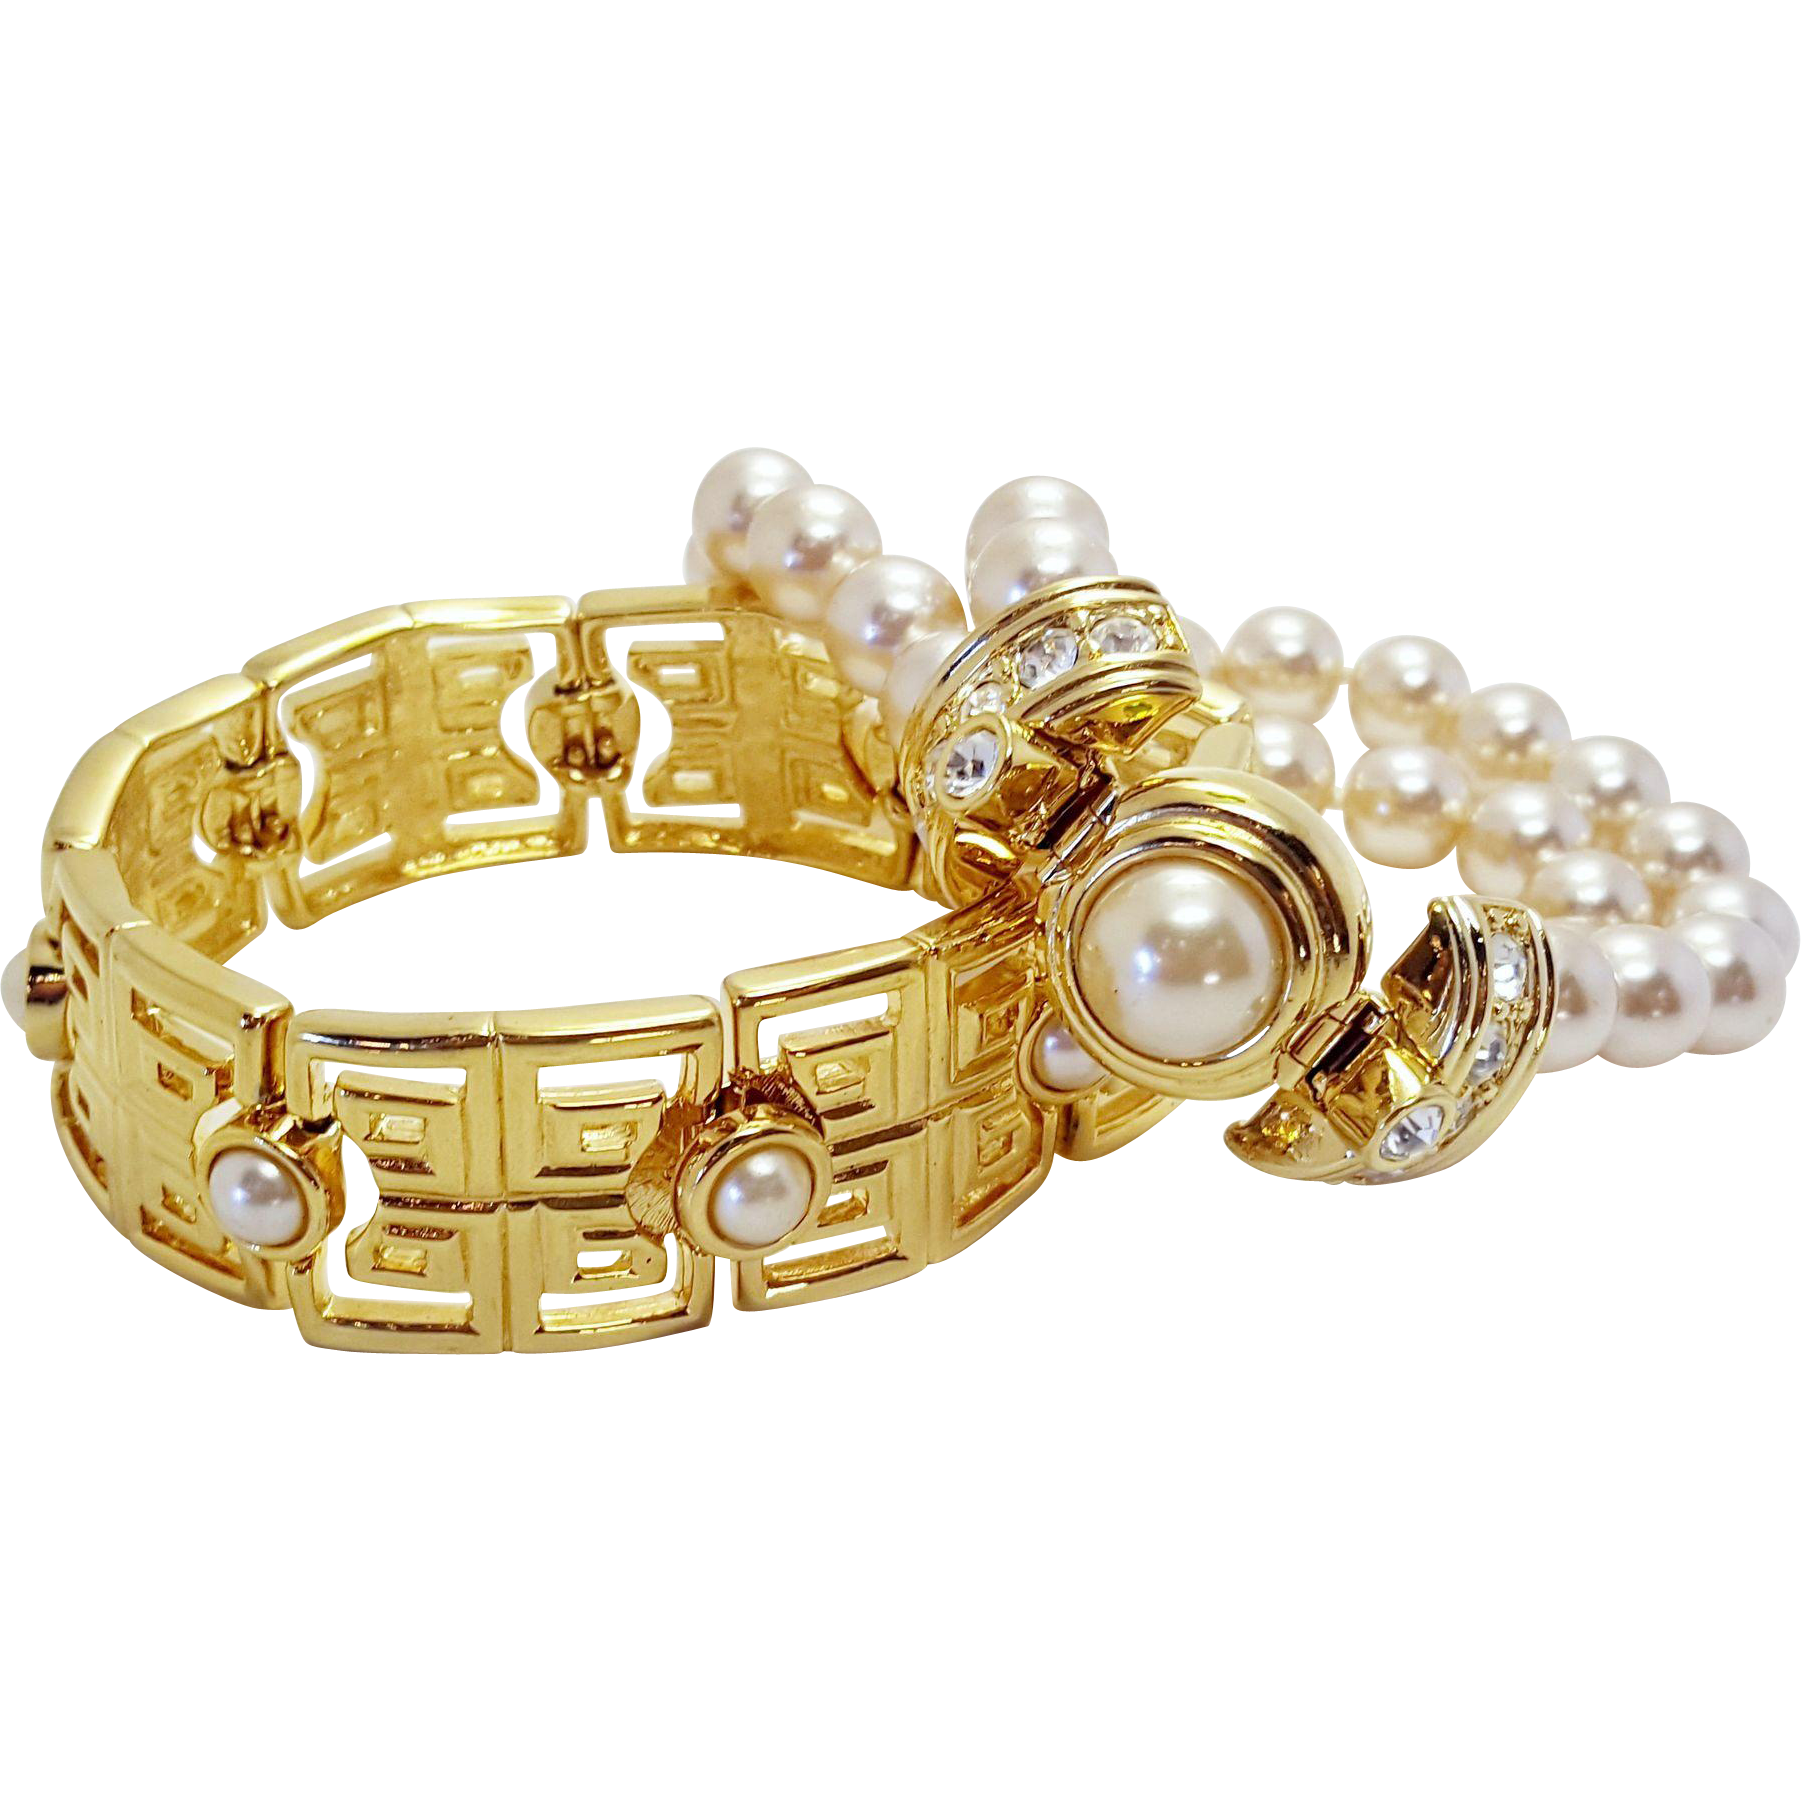 KJL Gold Tone and Faux Pearl Bracelet Gift Set Double Stranded Imitation Pearl Bracelet and Greek Key Square Link Bracelet Kenneth J. Lane Bridal